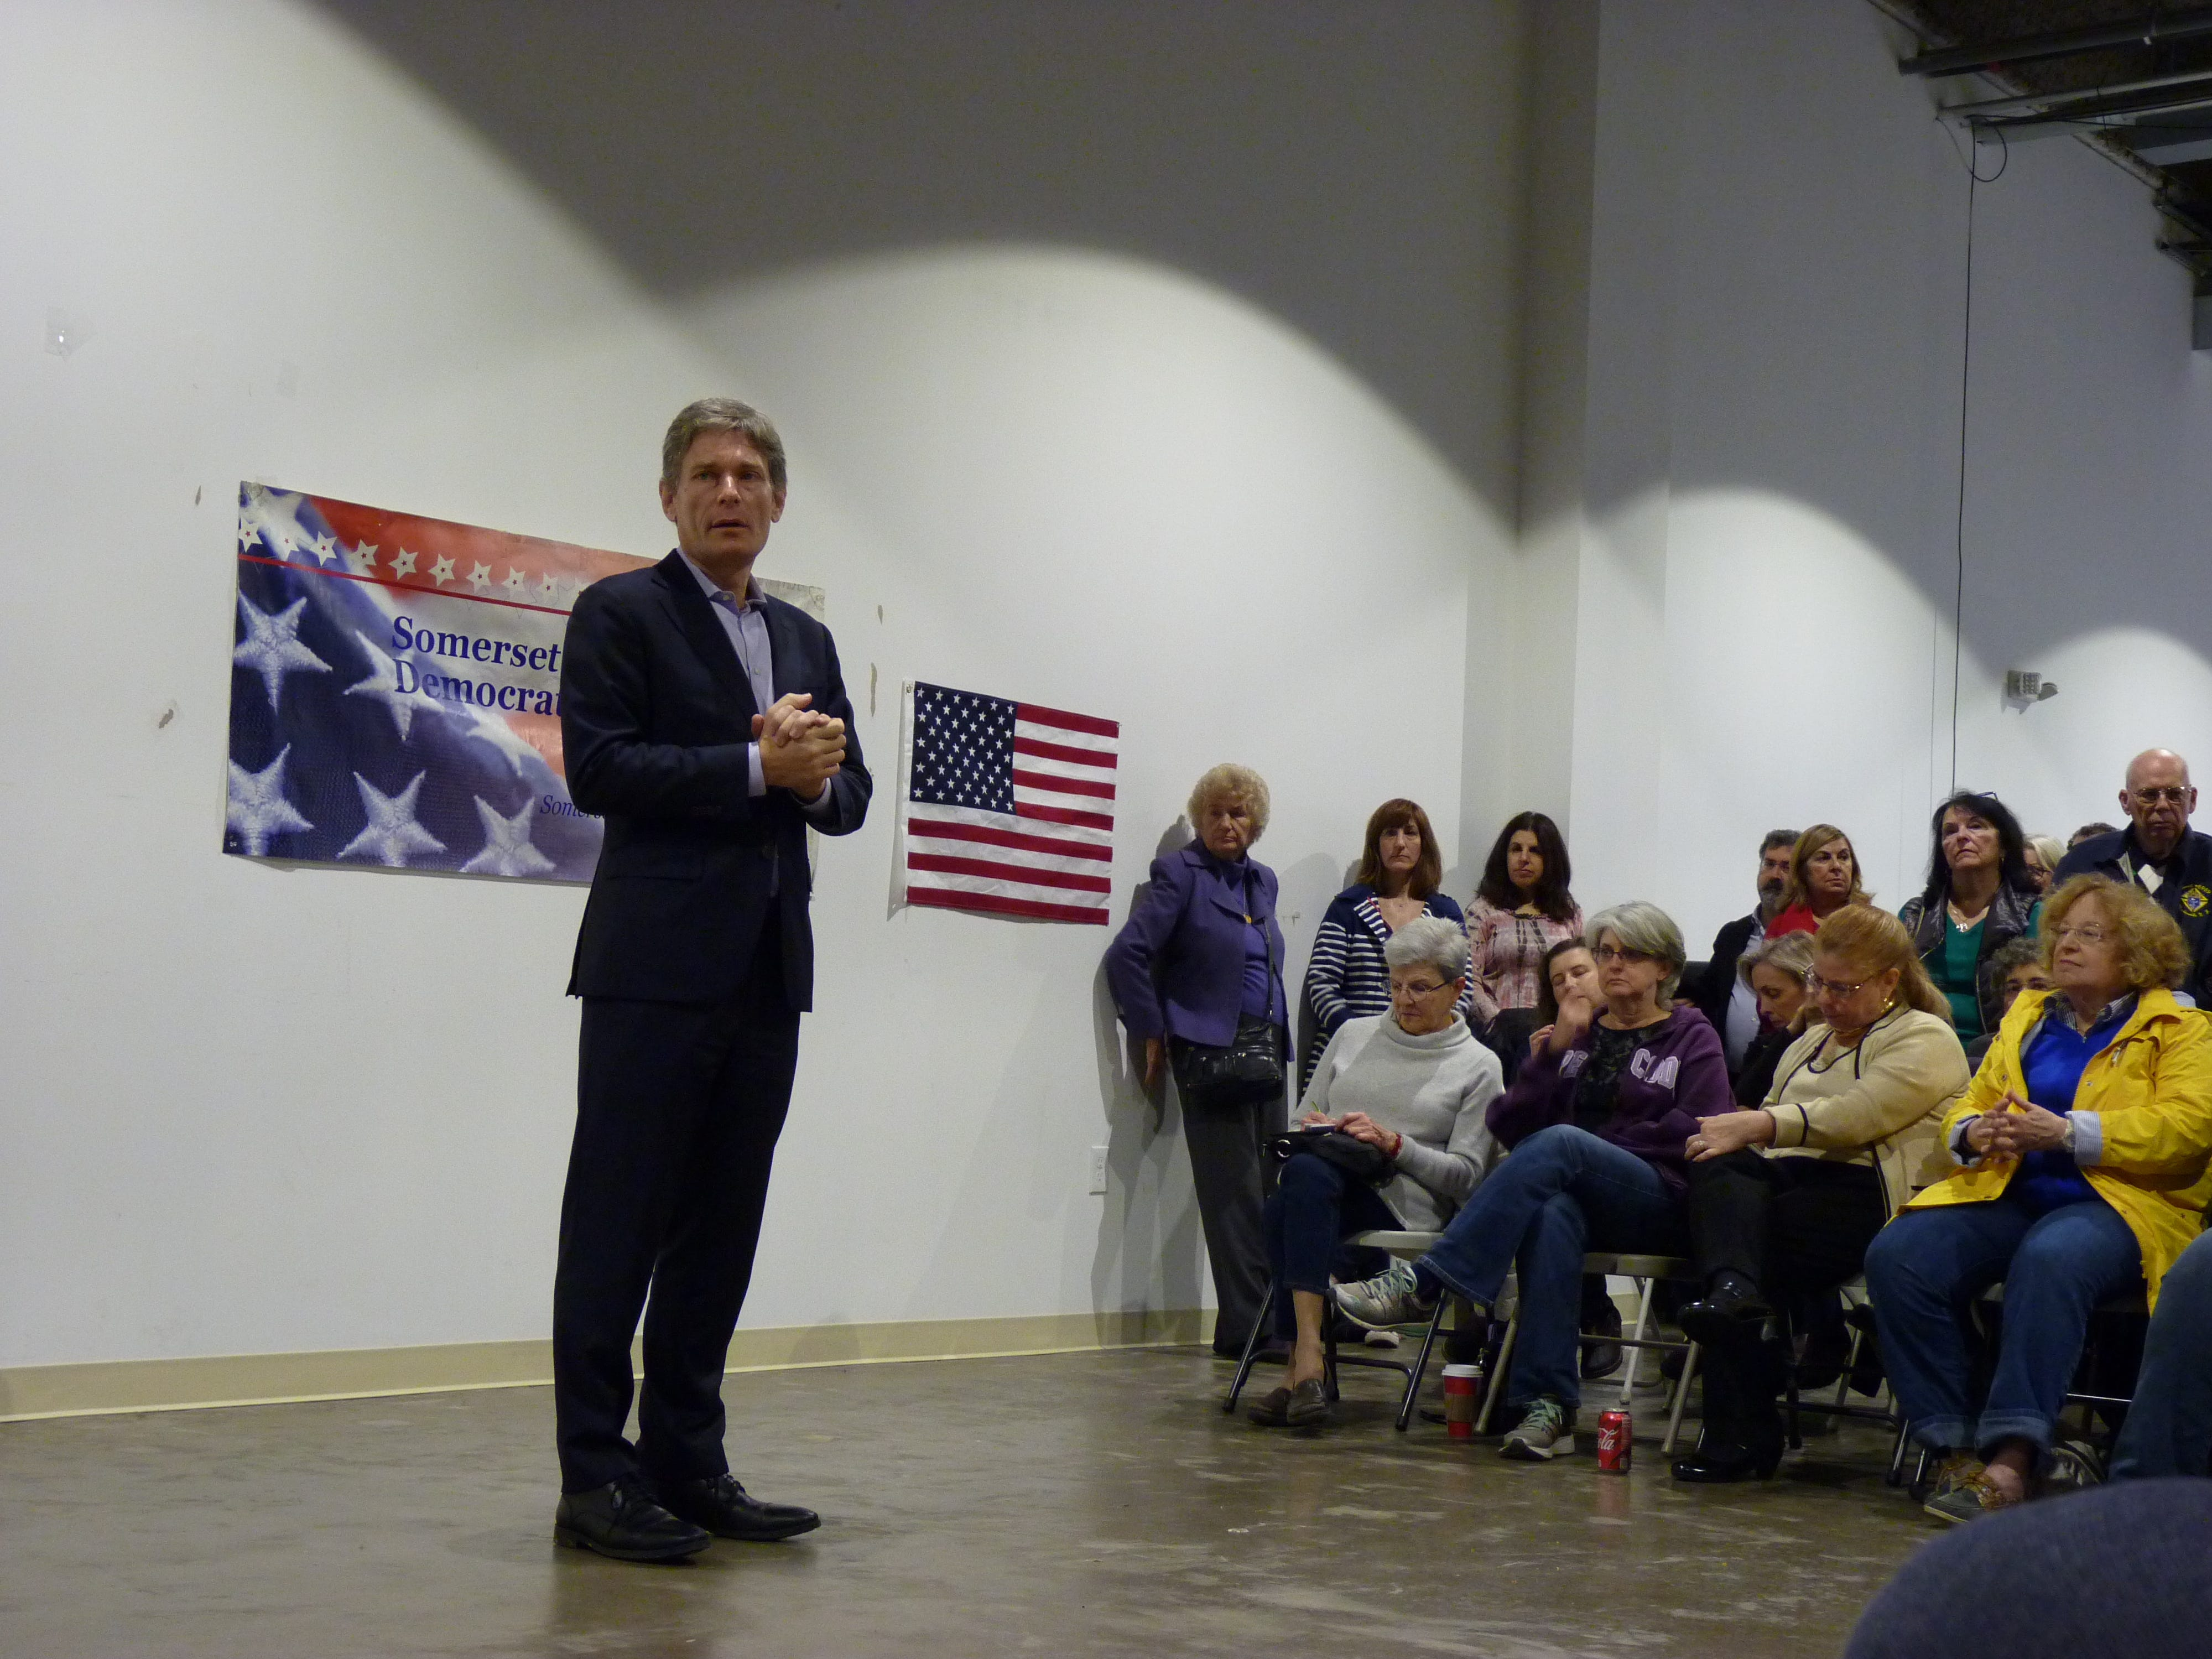 Congressman-elect Tom Malinowski held a town hall on Saturday, Dec. 15 in Somerville to speak to his constituents on issues regarding transportation, health care, immigration.